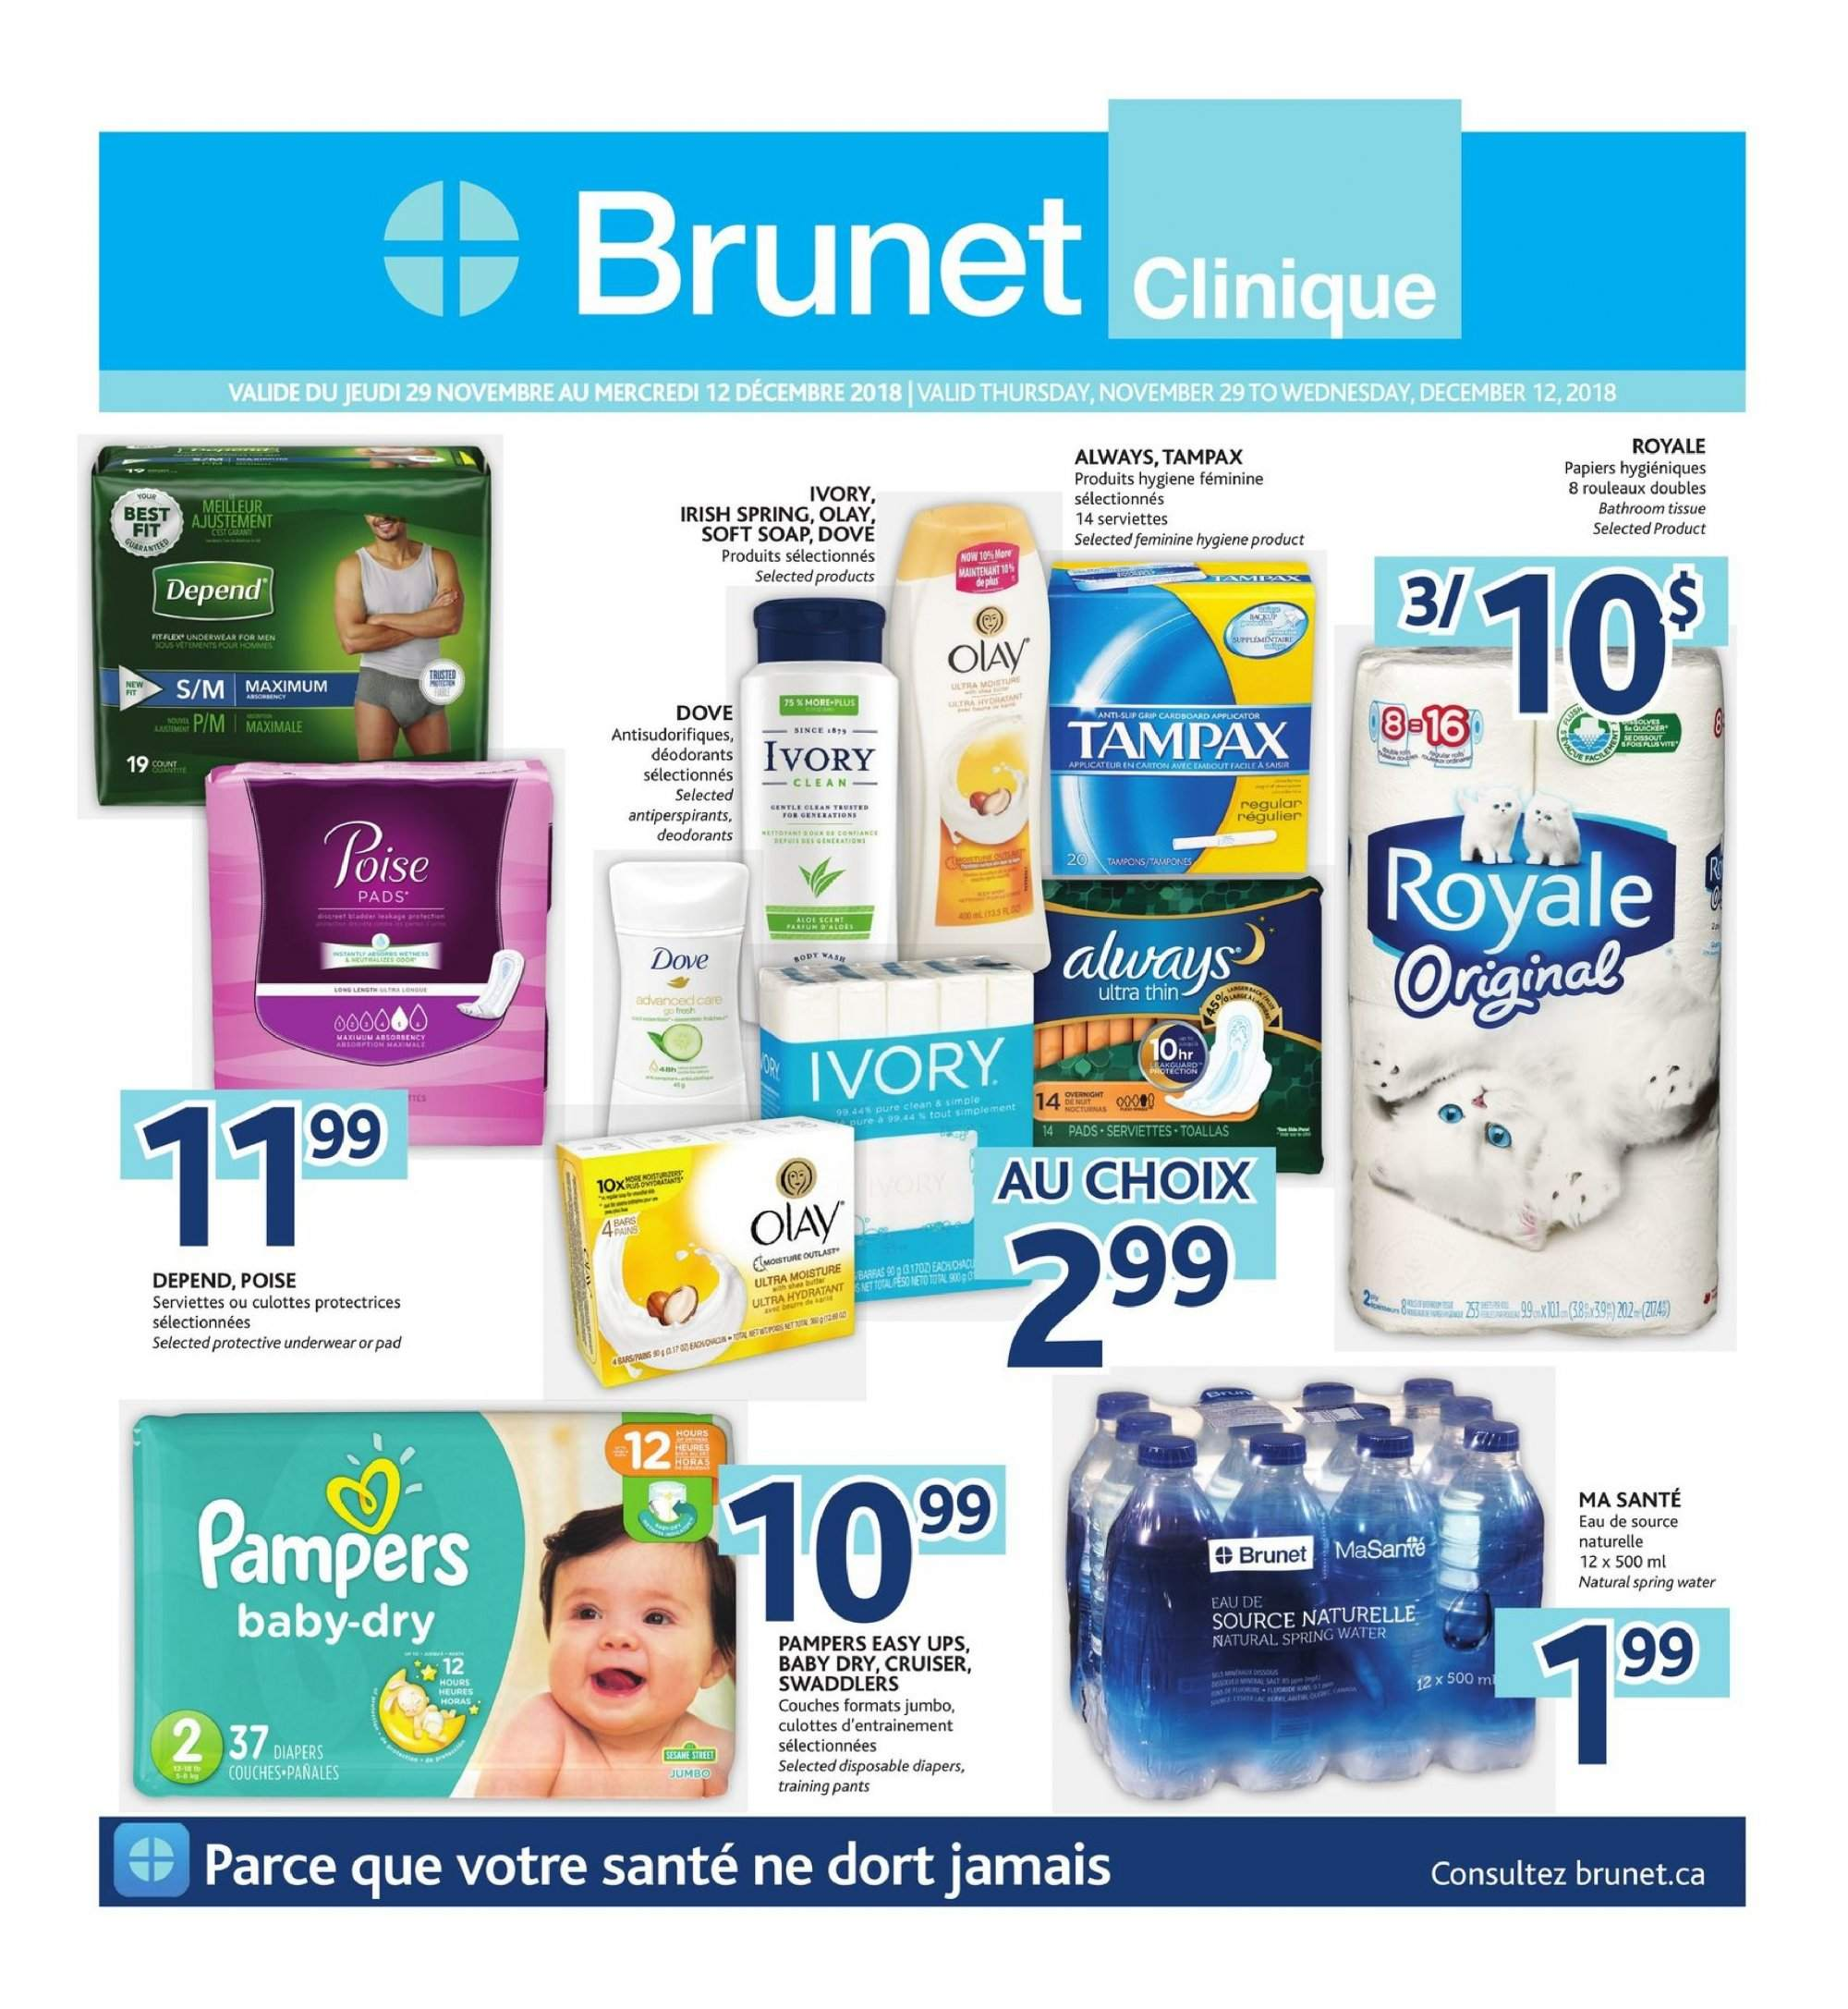 Brunet Flyer - November 29, 2018 - December 12, 2018 - Sales products - water. Page 1.